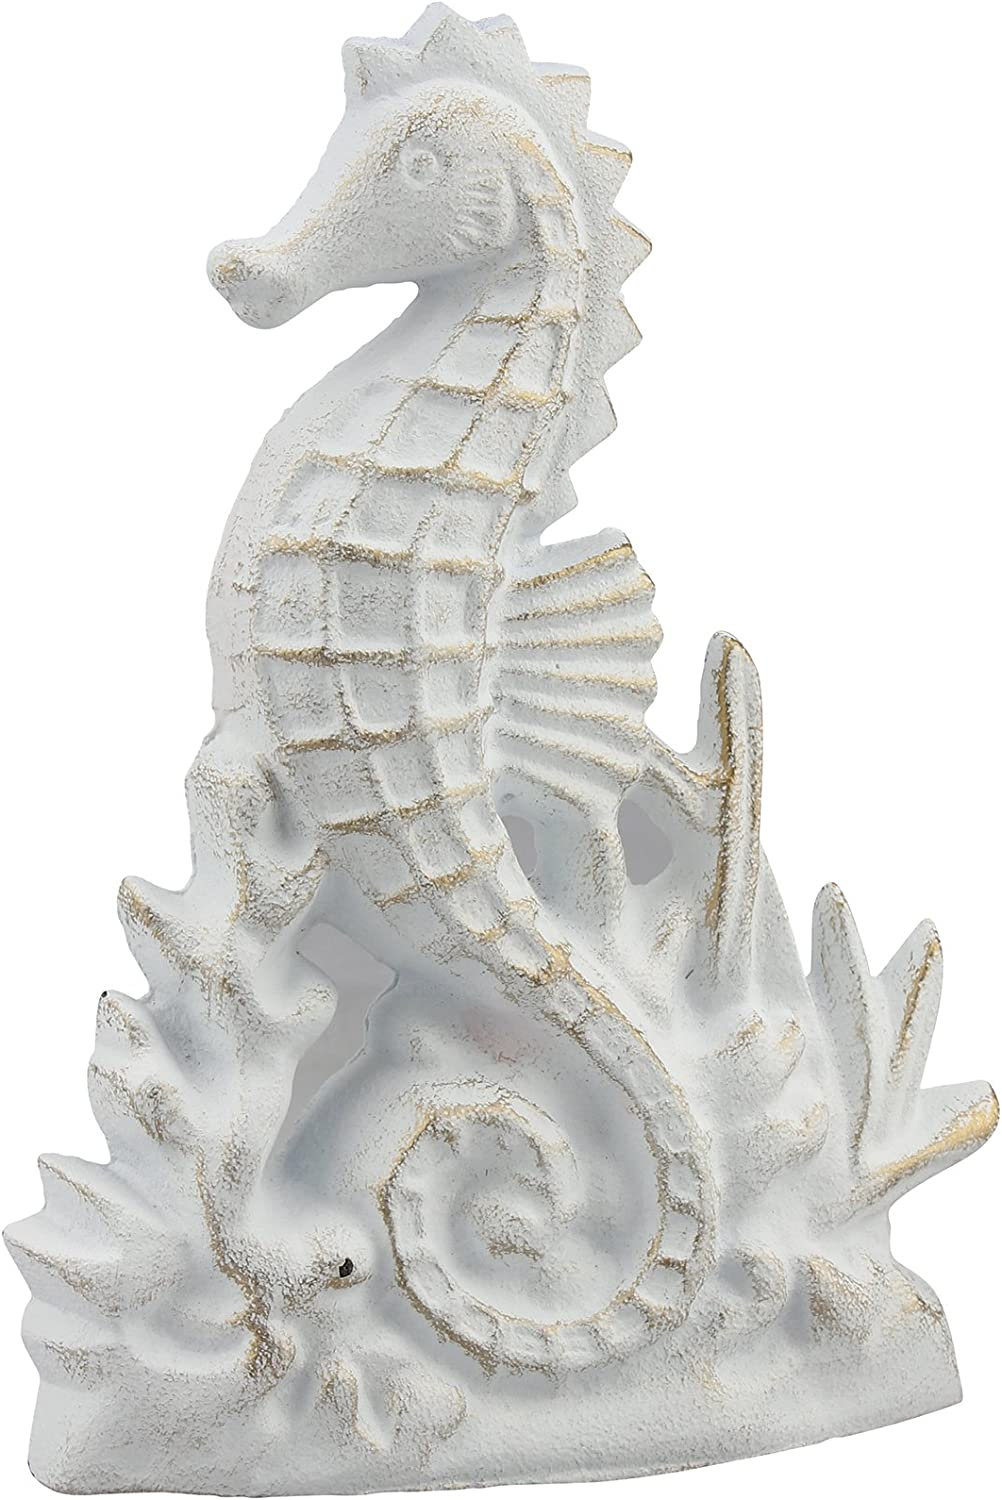 Stonebriar Beach House White and Gold Cast Iron Seahorse Door Stopper